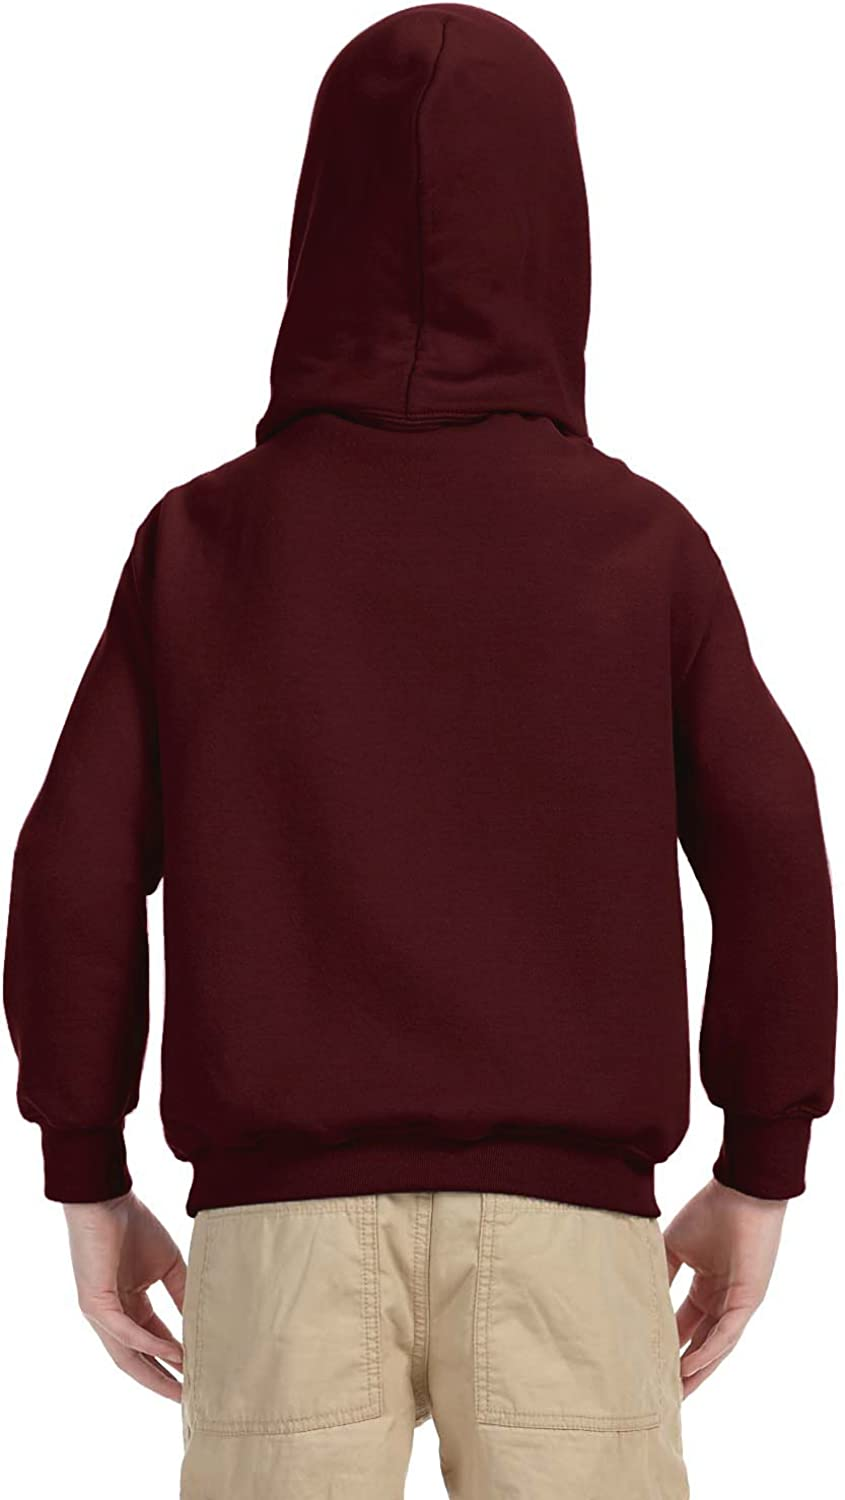 Indica Plateau Savage Hoodie for Kids